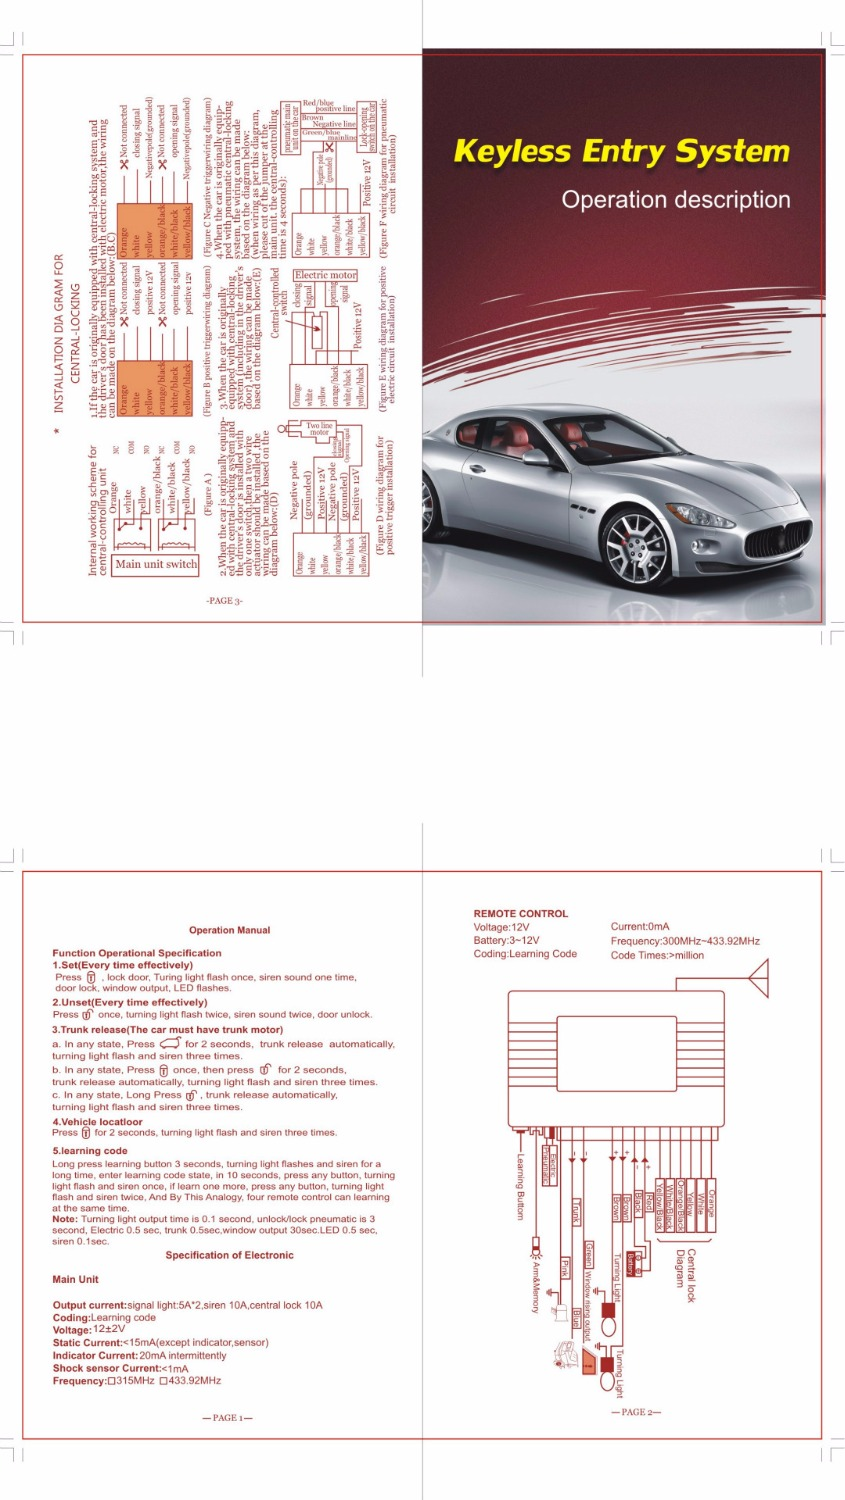 Lanbo Keyless Entry Wiring Diagram Mfk Universal Remote Car Alam Security Systems Auto Central Kit